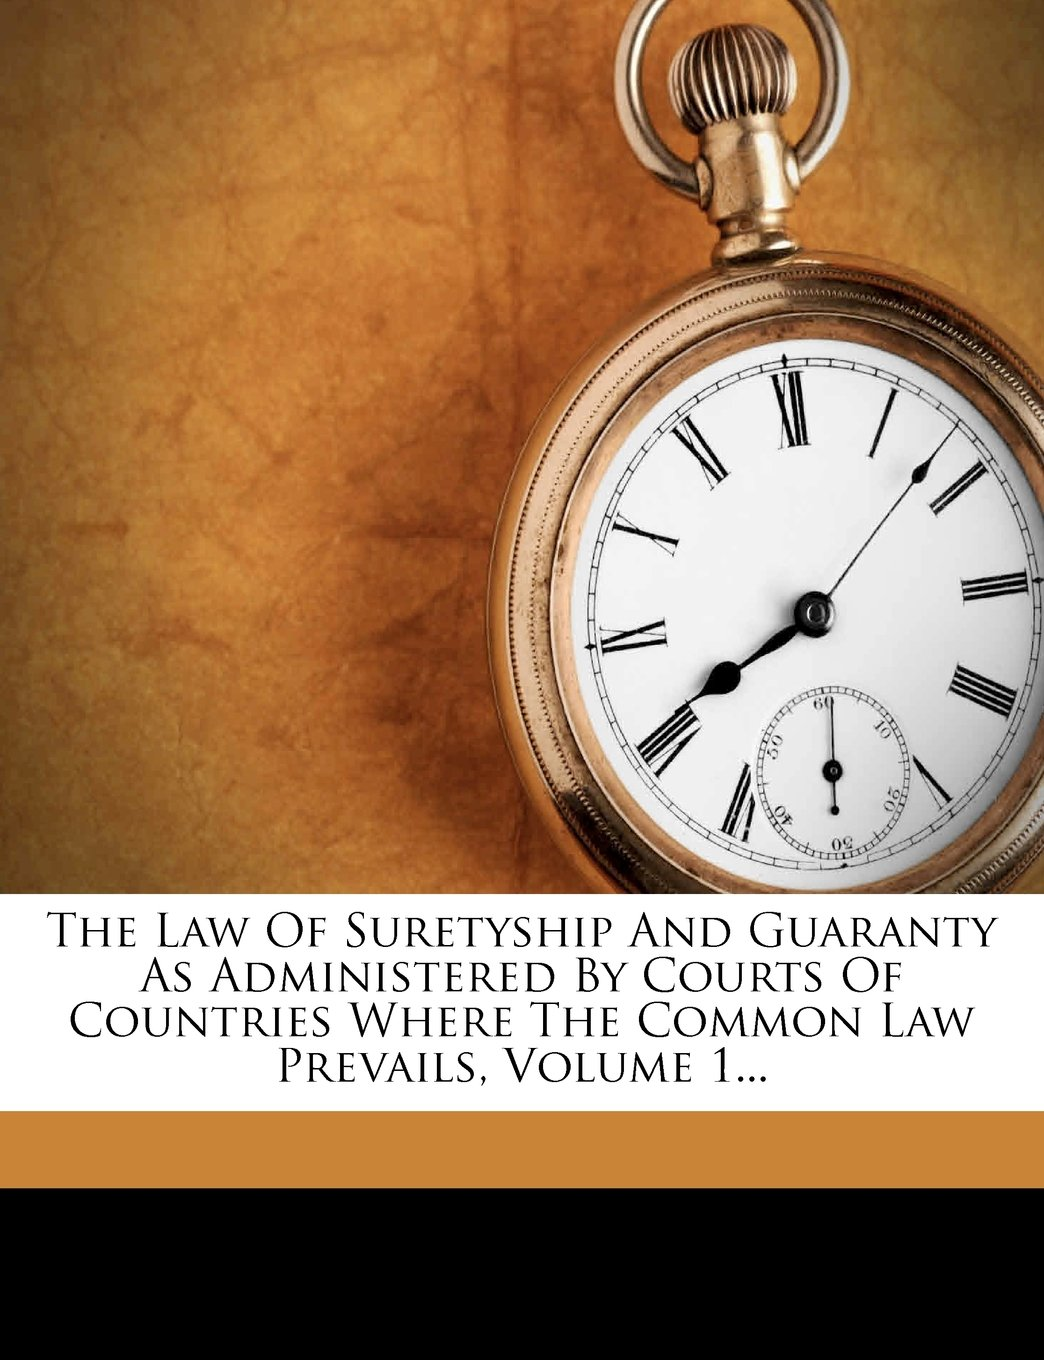 The Law Of Suretyship And Guaranty As Administered By Courts Of Countries Where The Common Law Prevails, Volume 1... ebook